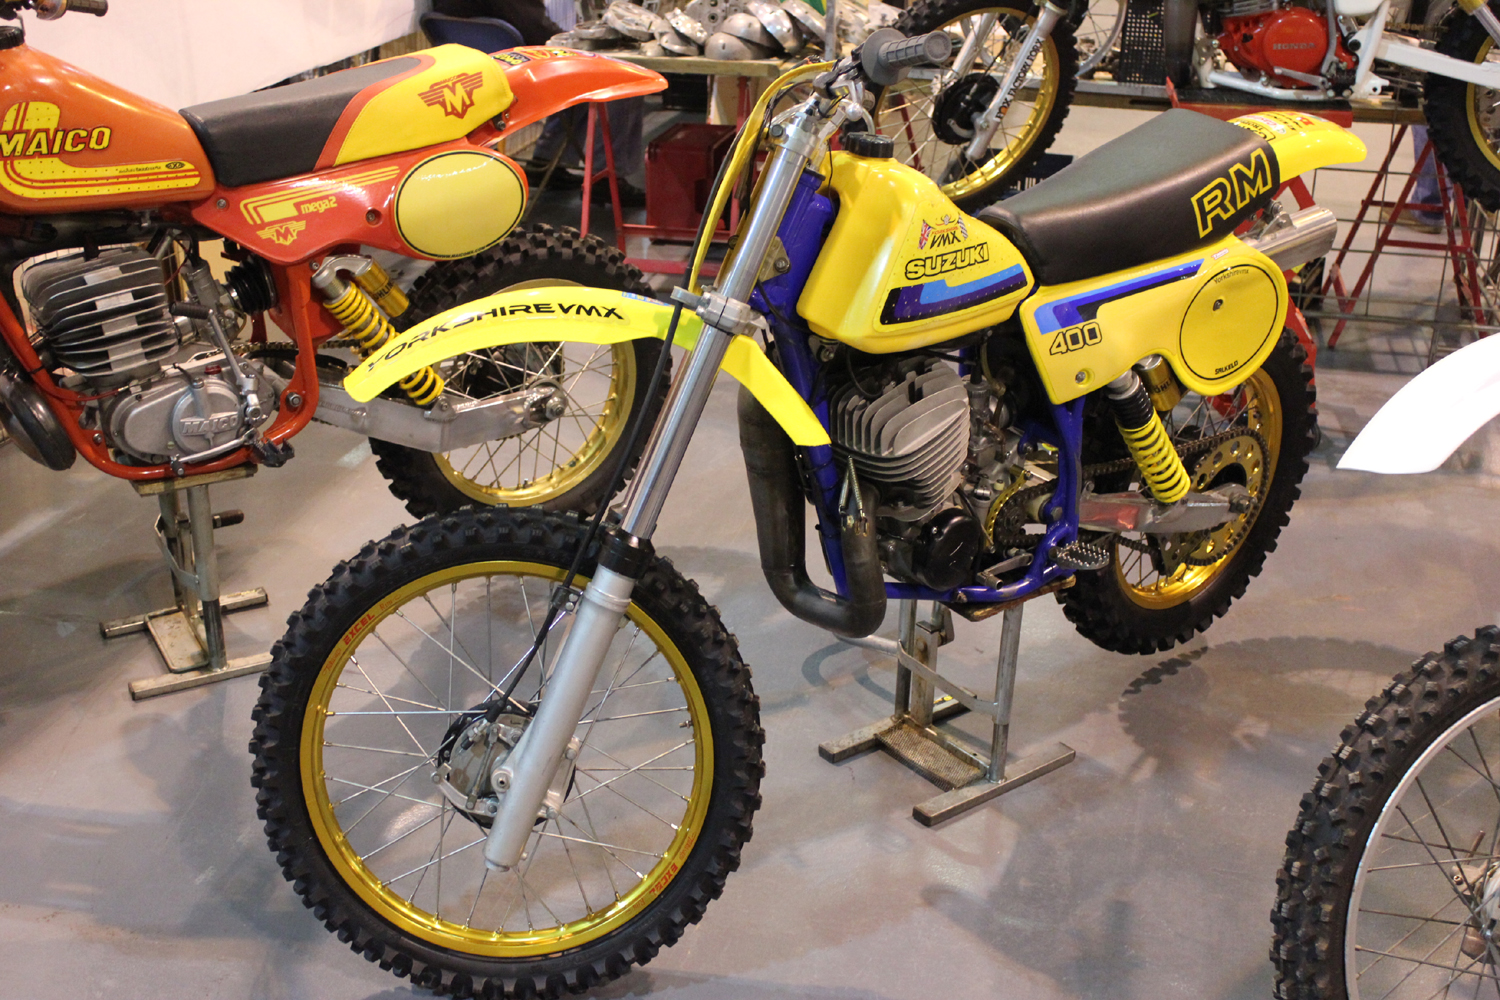 classicdirtbikerider.com-photo by Mr J-2015 Telford classic dirt bike show-SUZUKI RM400 TWINSHOCK